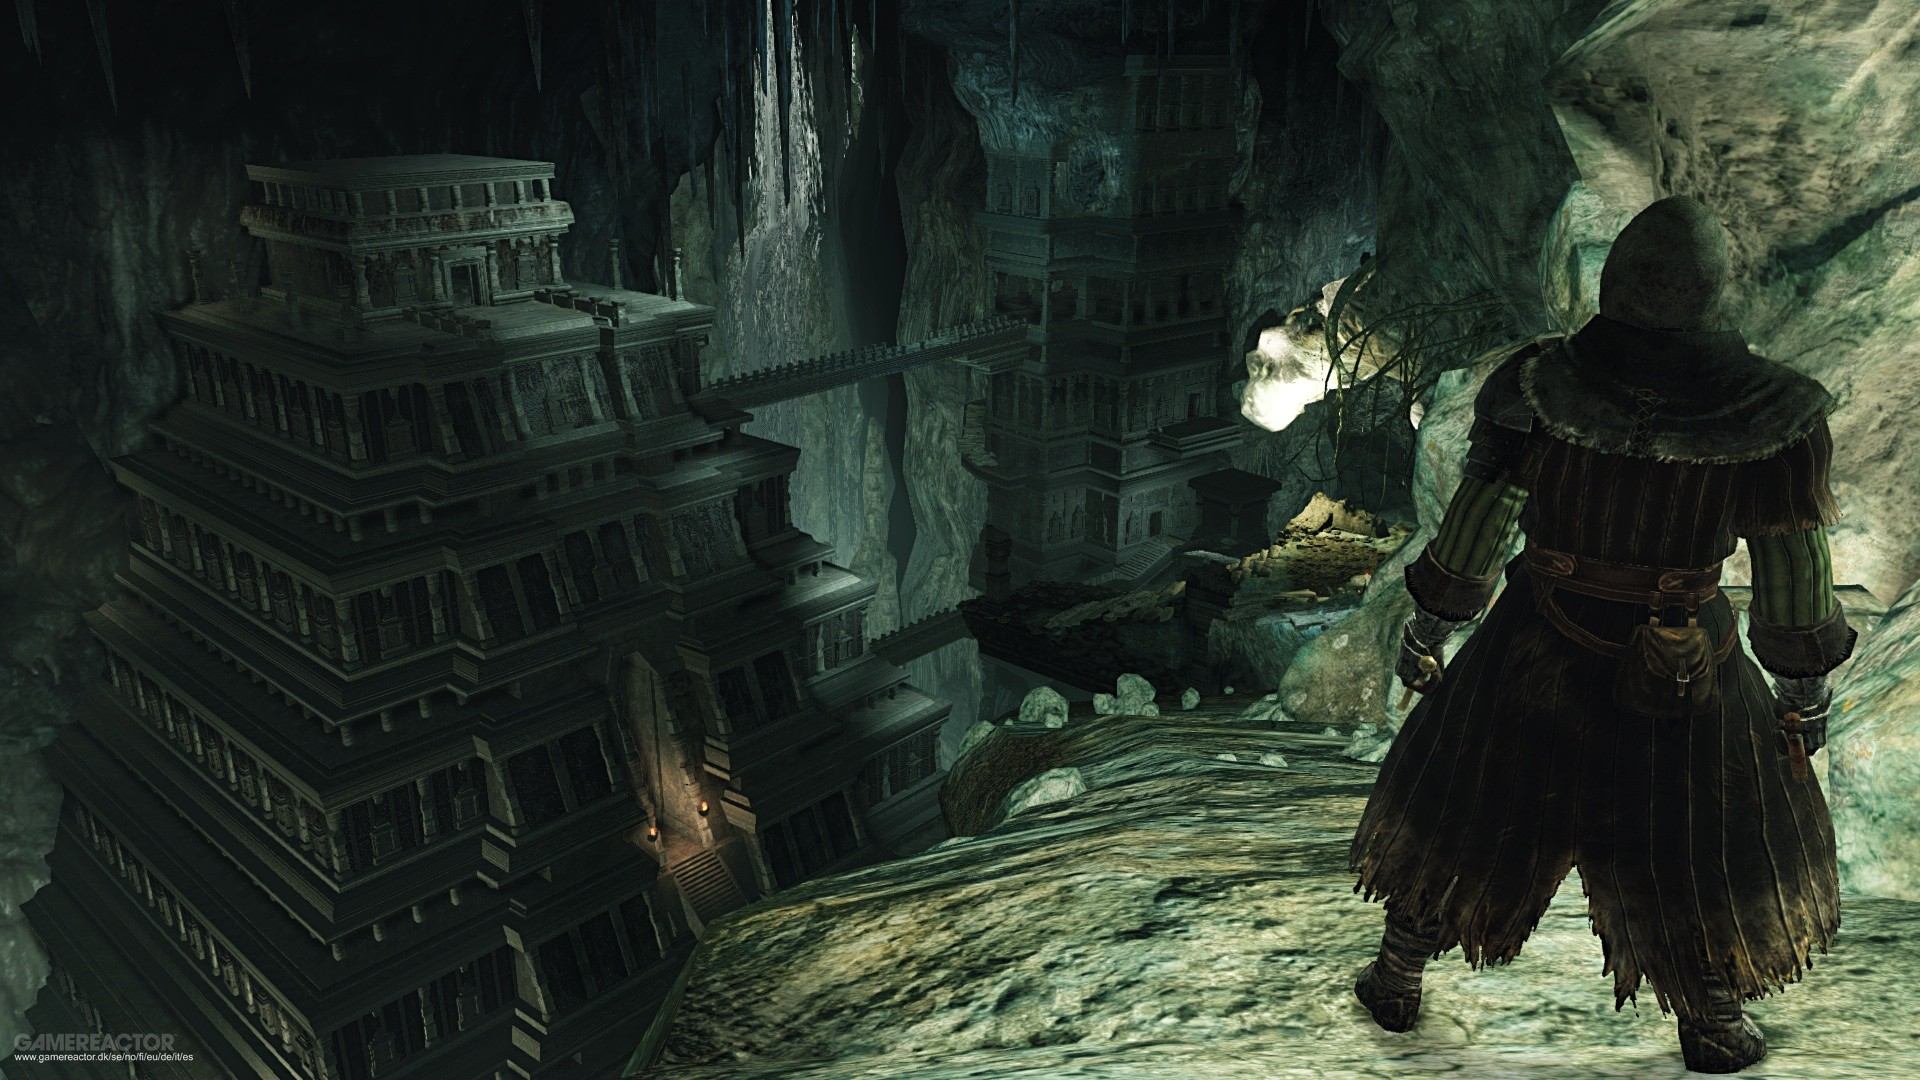 Dark Souls Ii Gets Trilogy Of Dlc